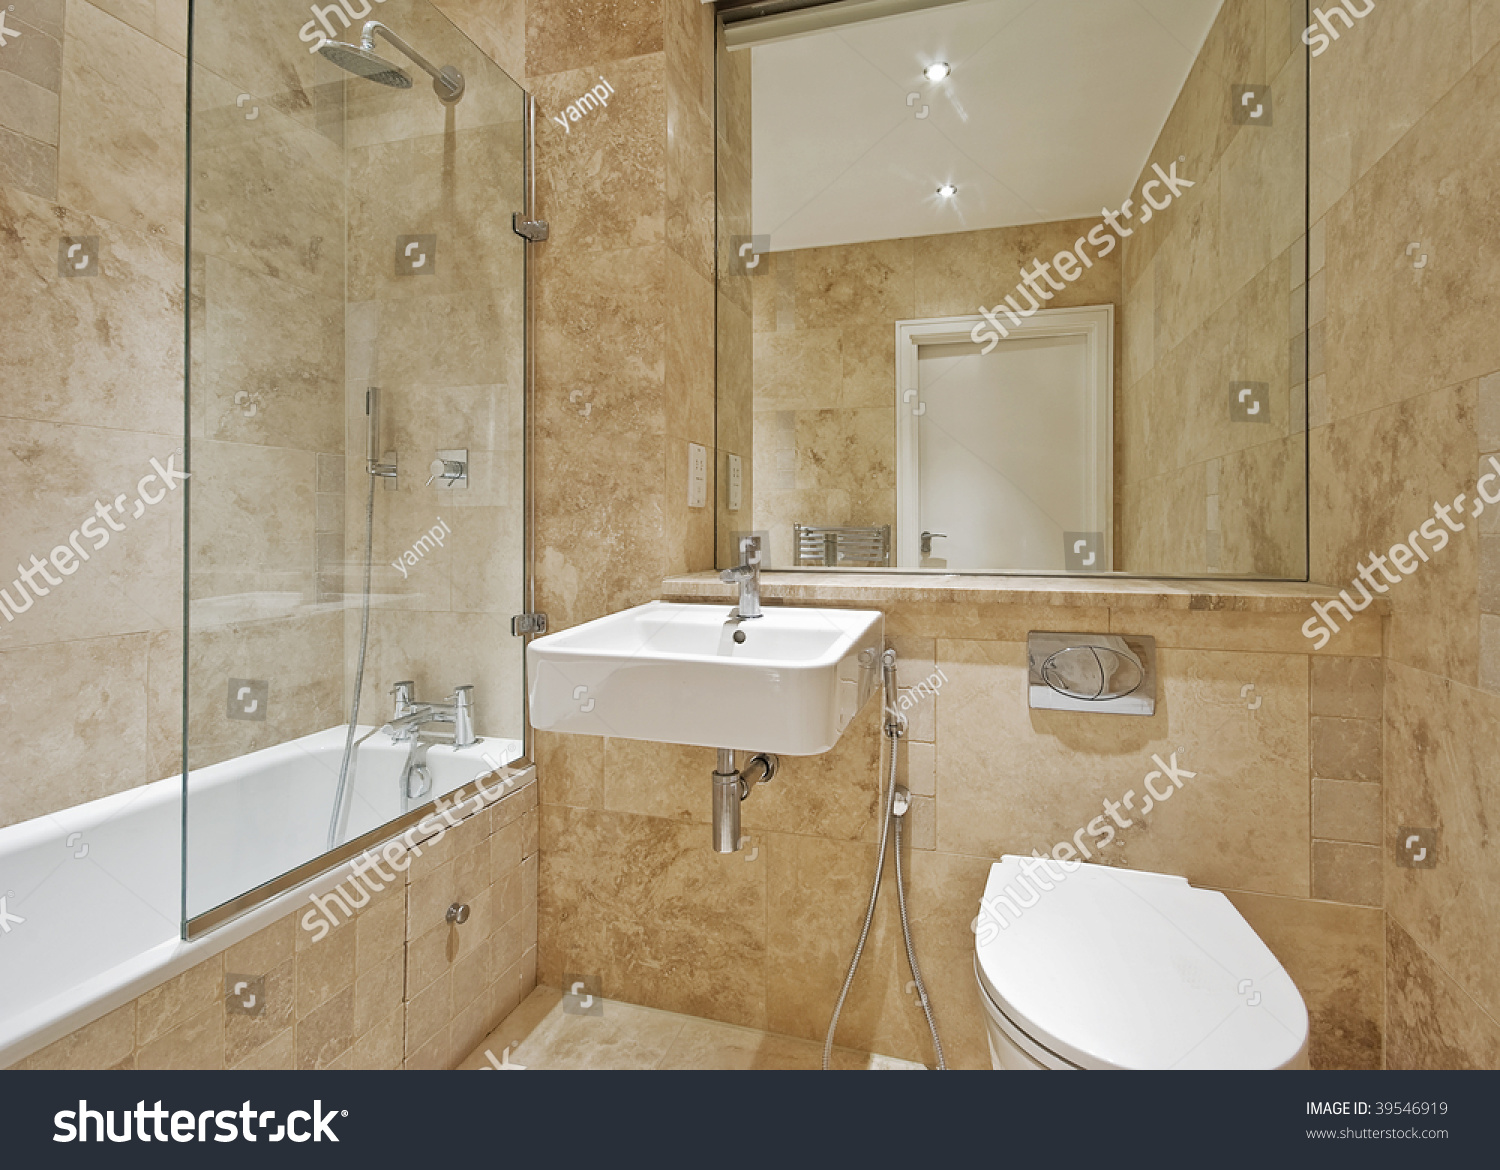 Luxury You Can Create A Fourth Wall With Light Brown Tiles Interspersed With Dark Brown Tiles Use A Few Dark Brown Tiles In The Floor Pattern, Too Try Using Cinnamoncolored Towels To Tie Everything Together You Might Want To Create A Very Artistic